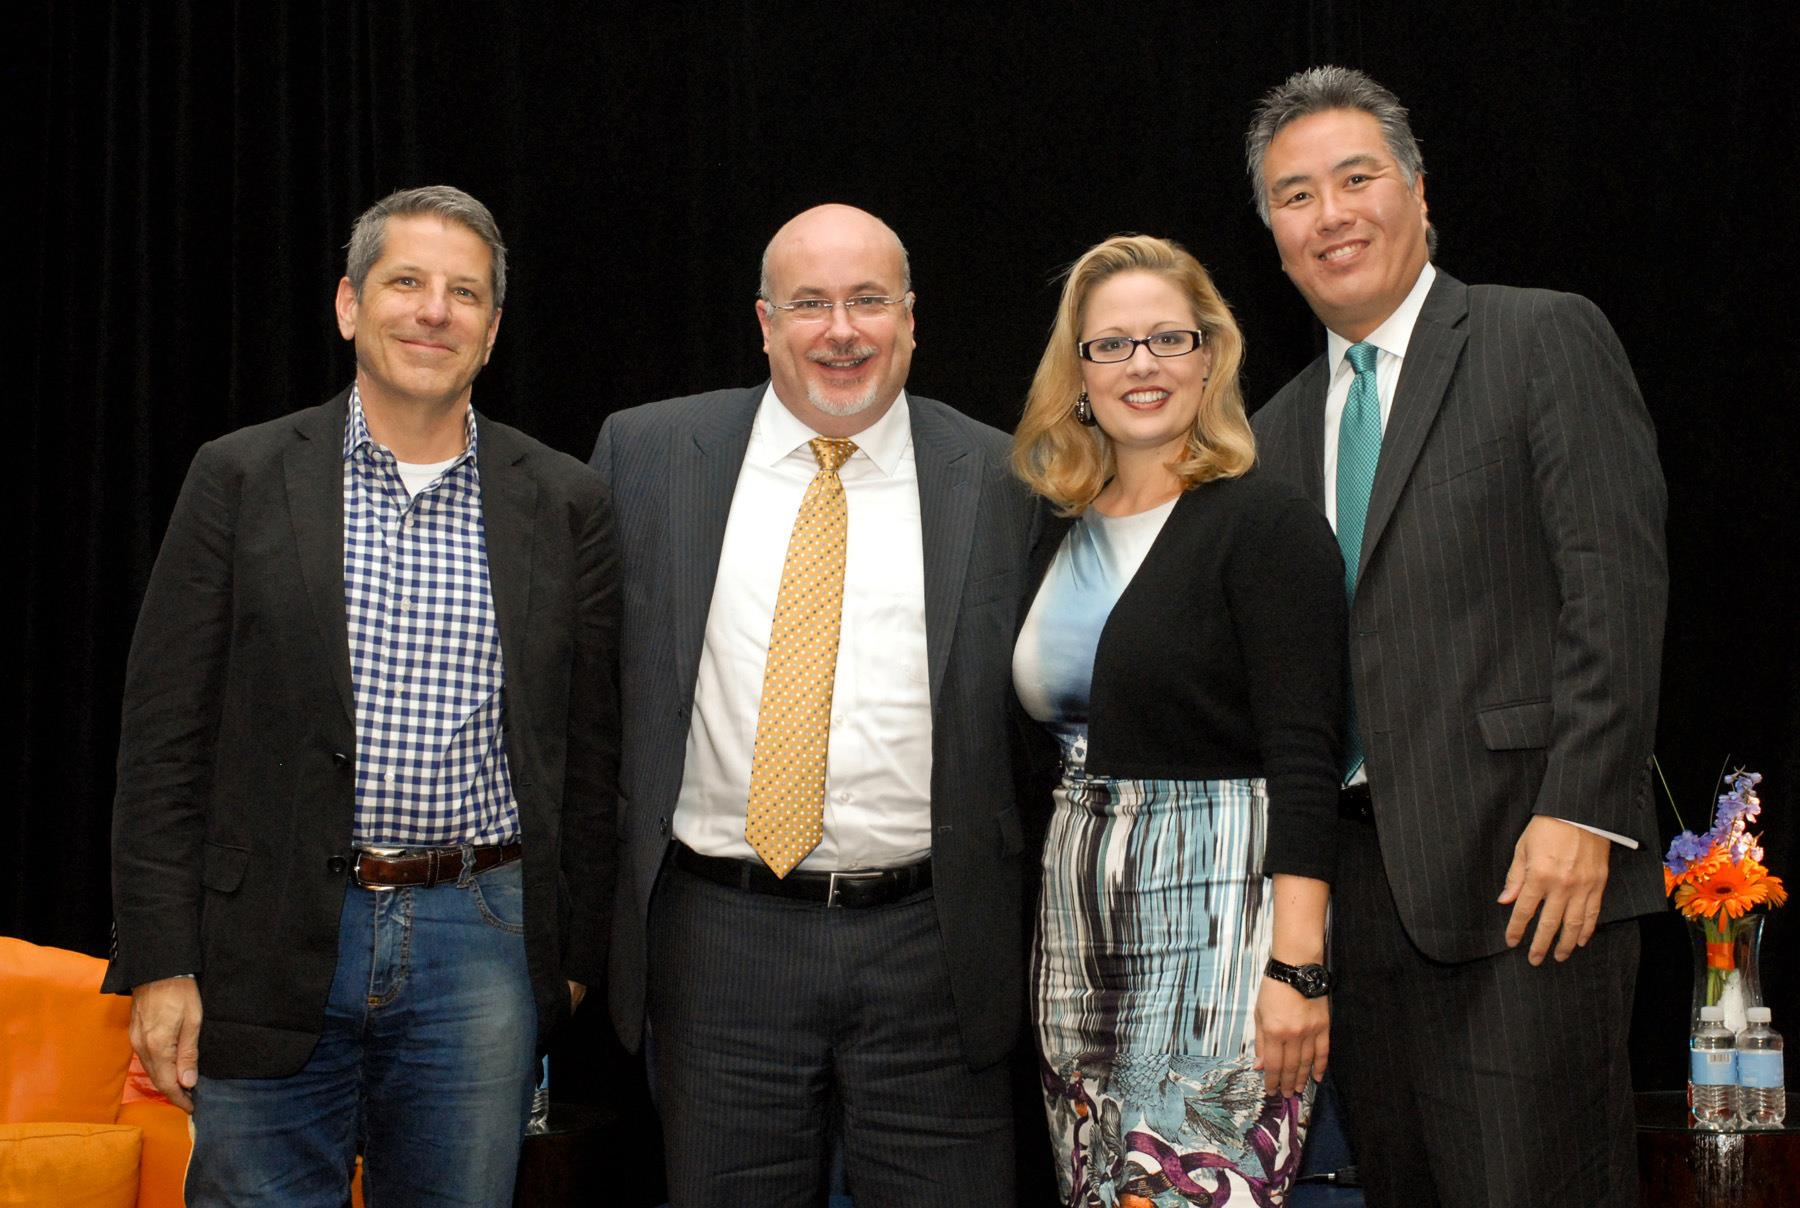 Former LGBTQ Victory Fund Chair Steve Elmendorf with Representatives-elect Mark Pocan, Kyrsten Sinema and Mark Takano at the 2012 International LGBTQ Leaders Conference in Long Beach, California.